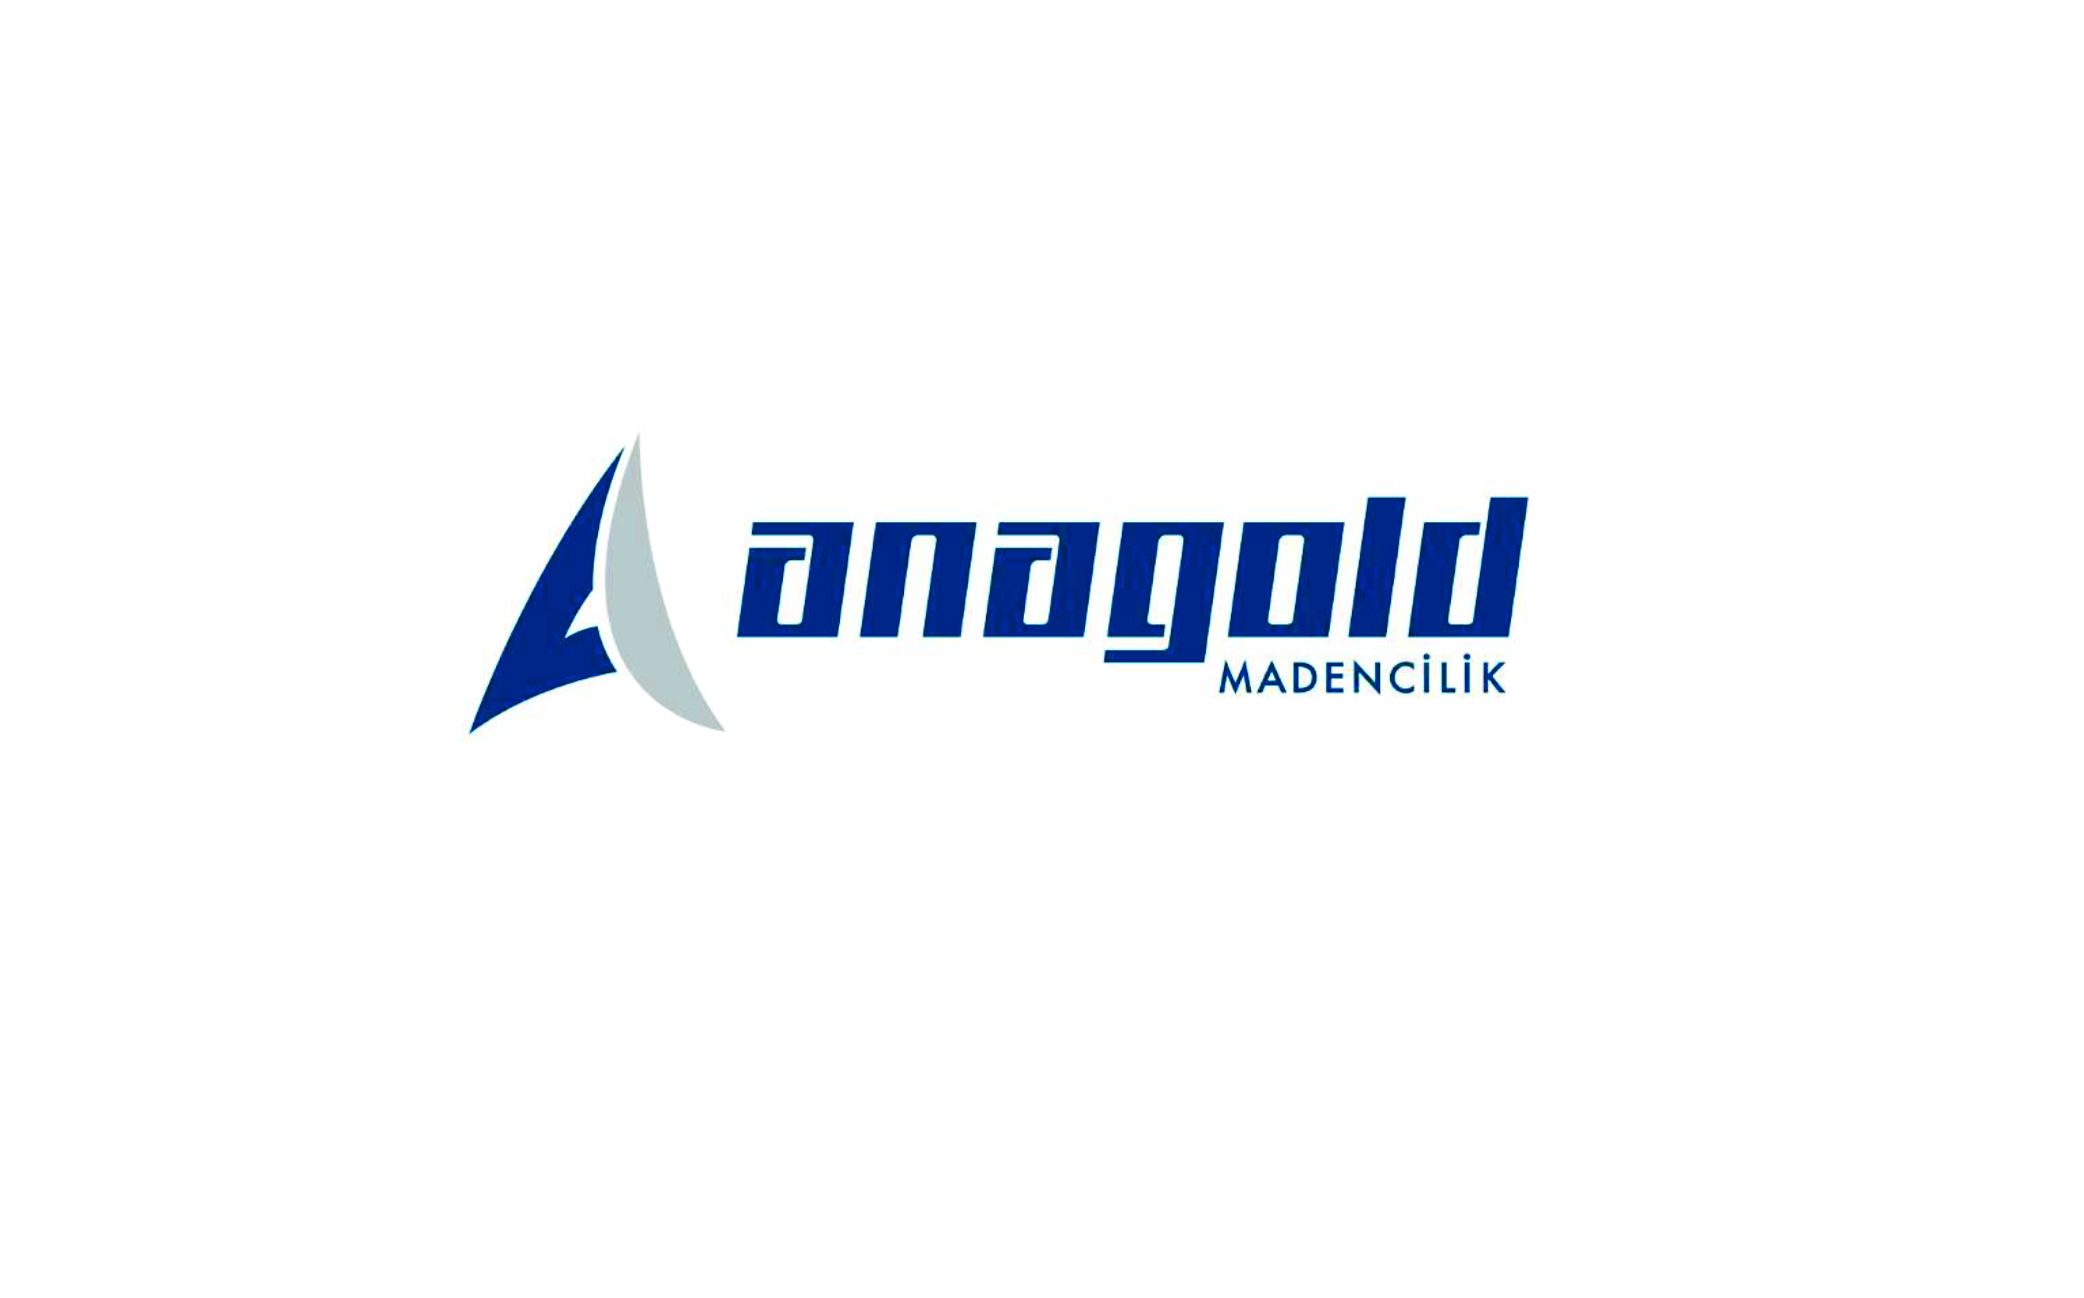 ANAGOLD